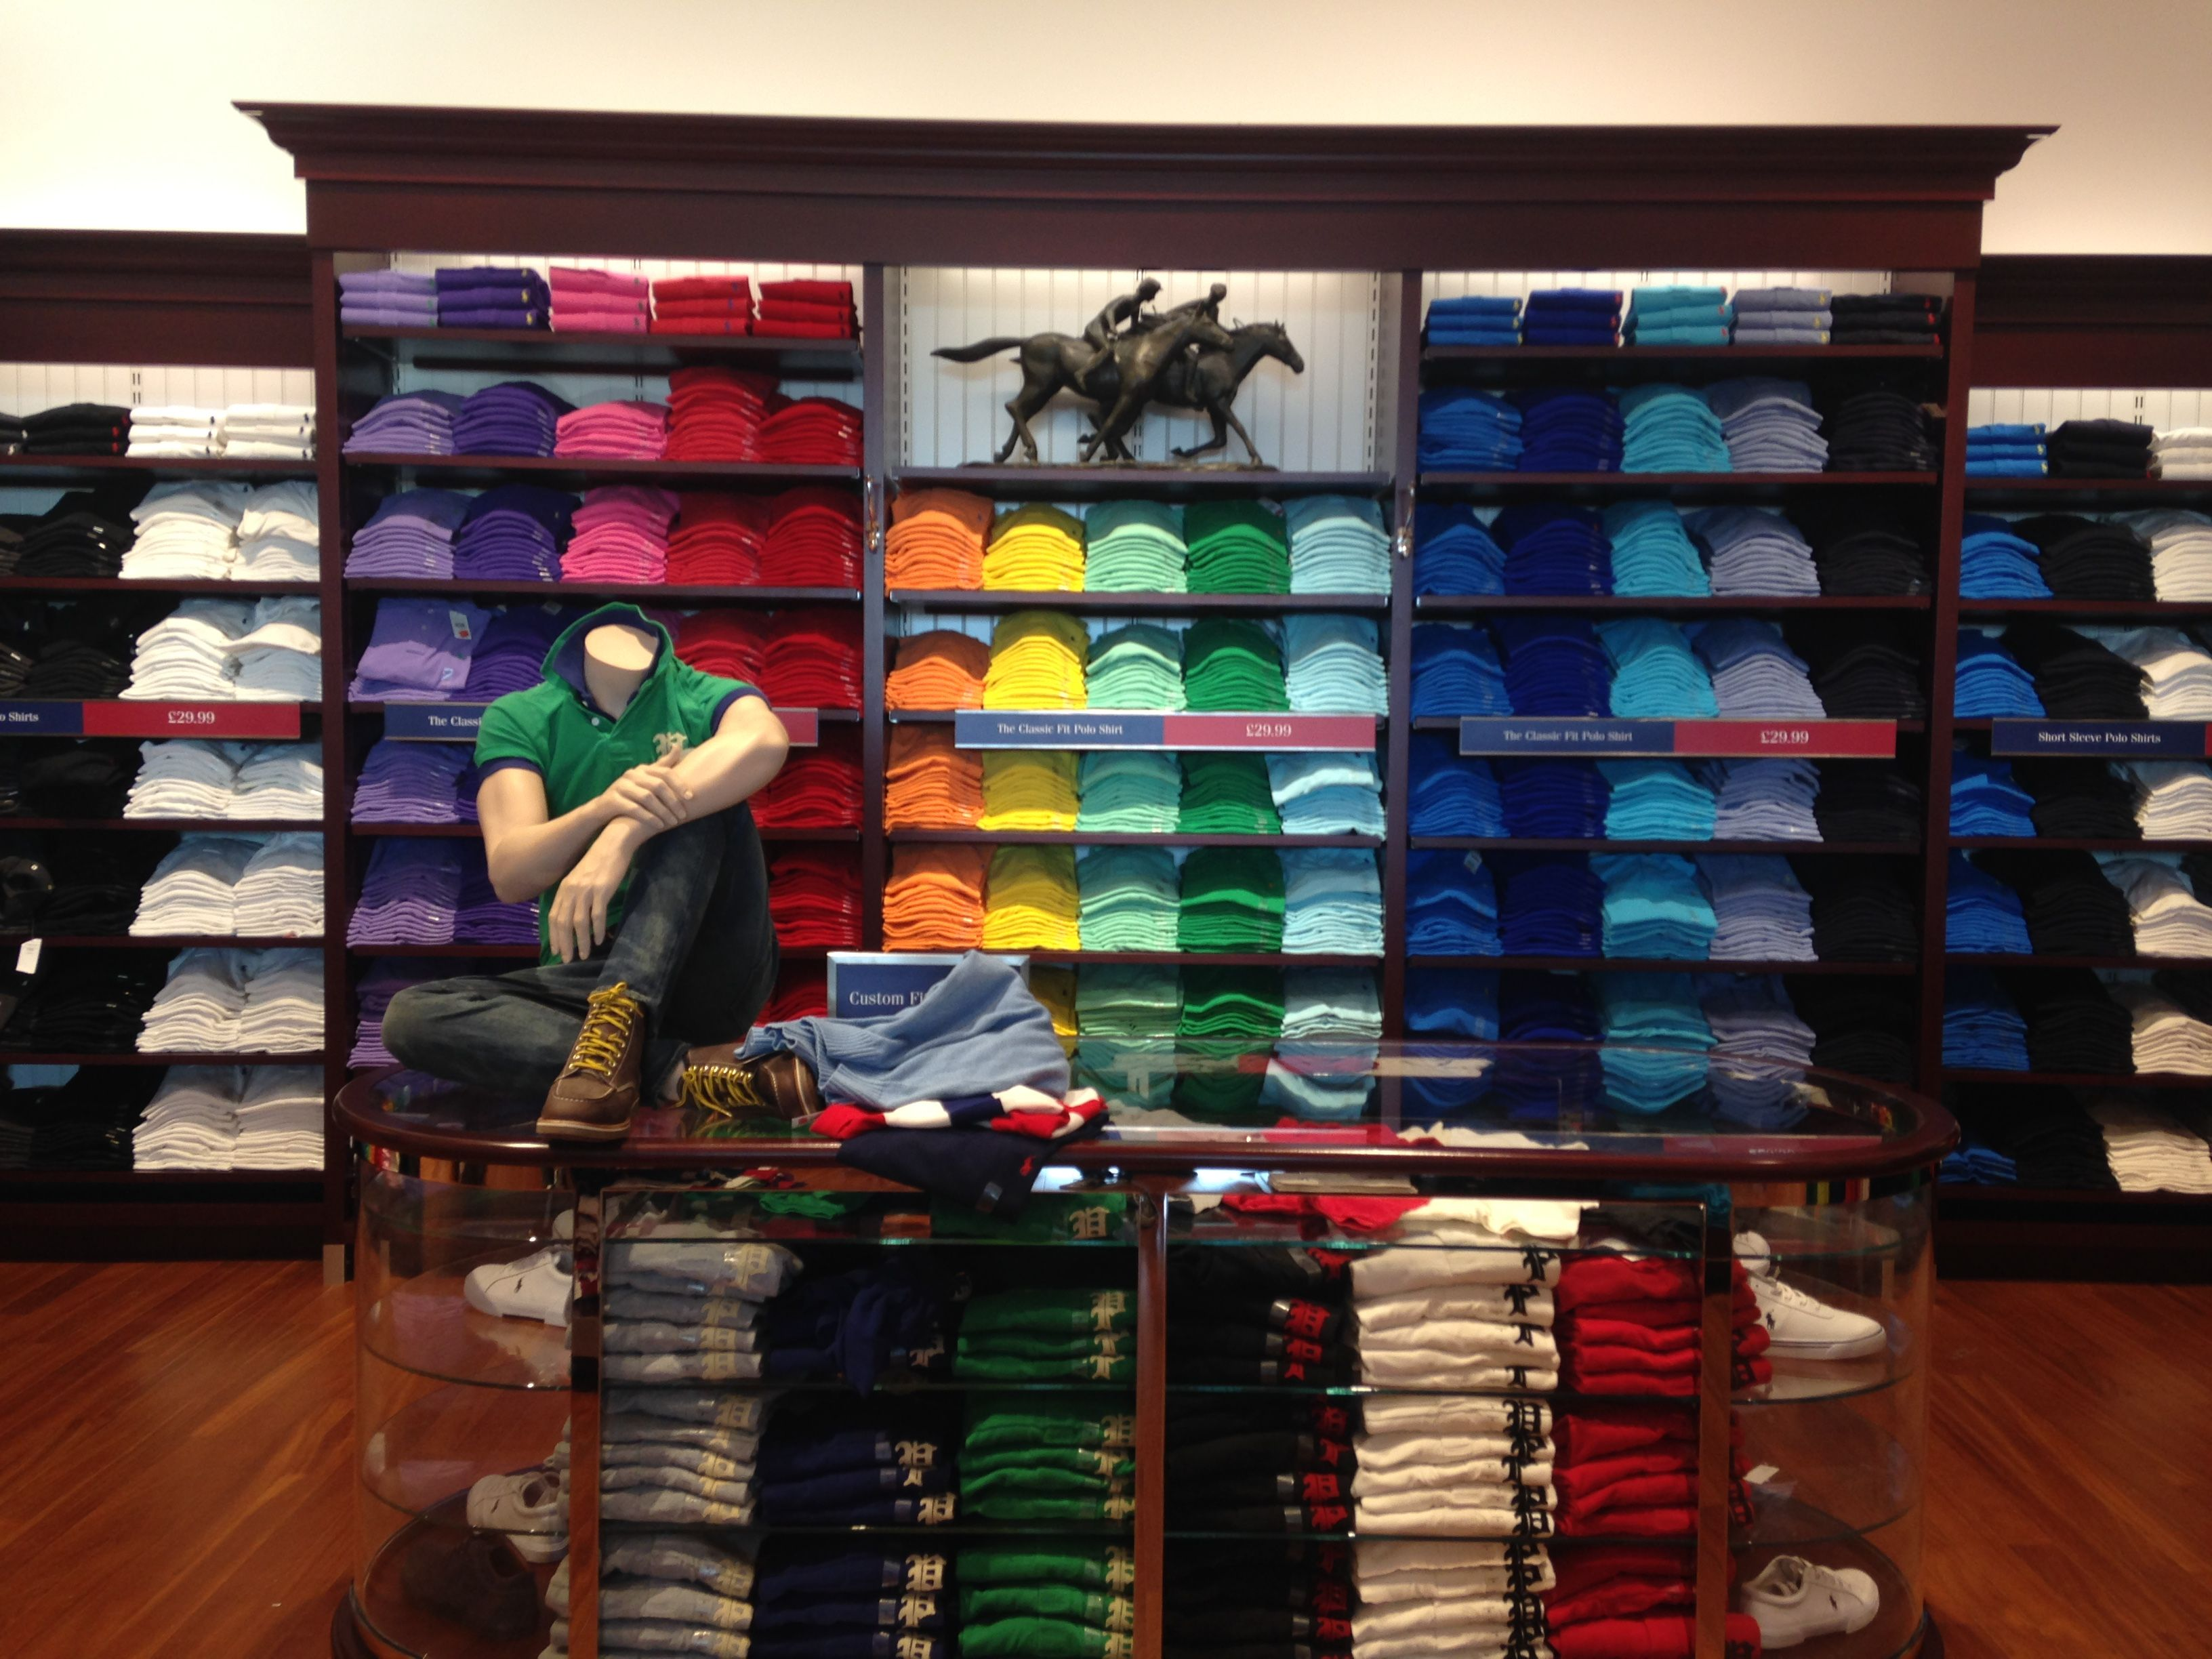 8cda44236322 Smart. Fresh. This visual merchandising is really engaging and eye catching  and gives a memorable experience for the Ralph Lauren Polo customer.